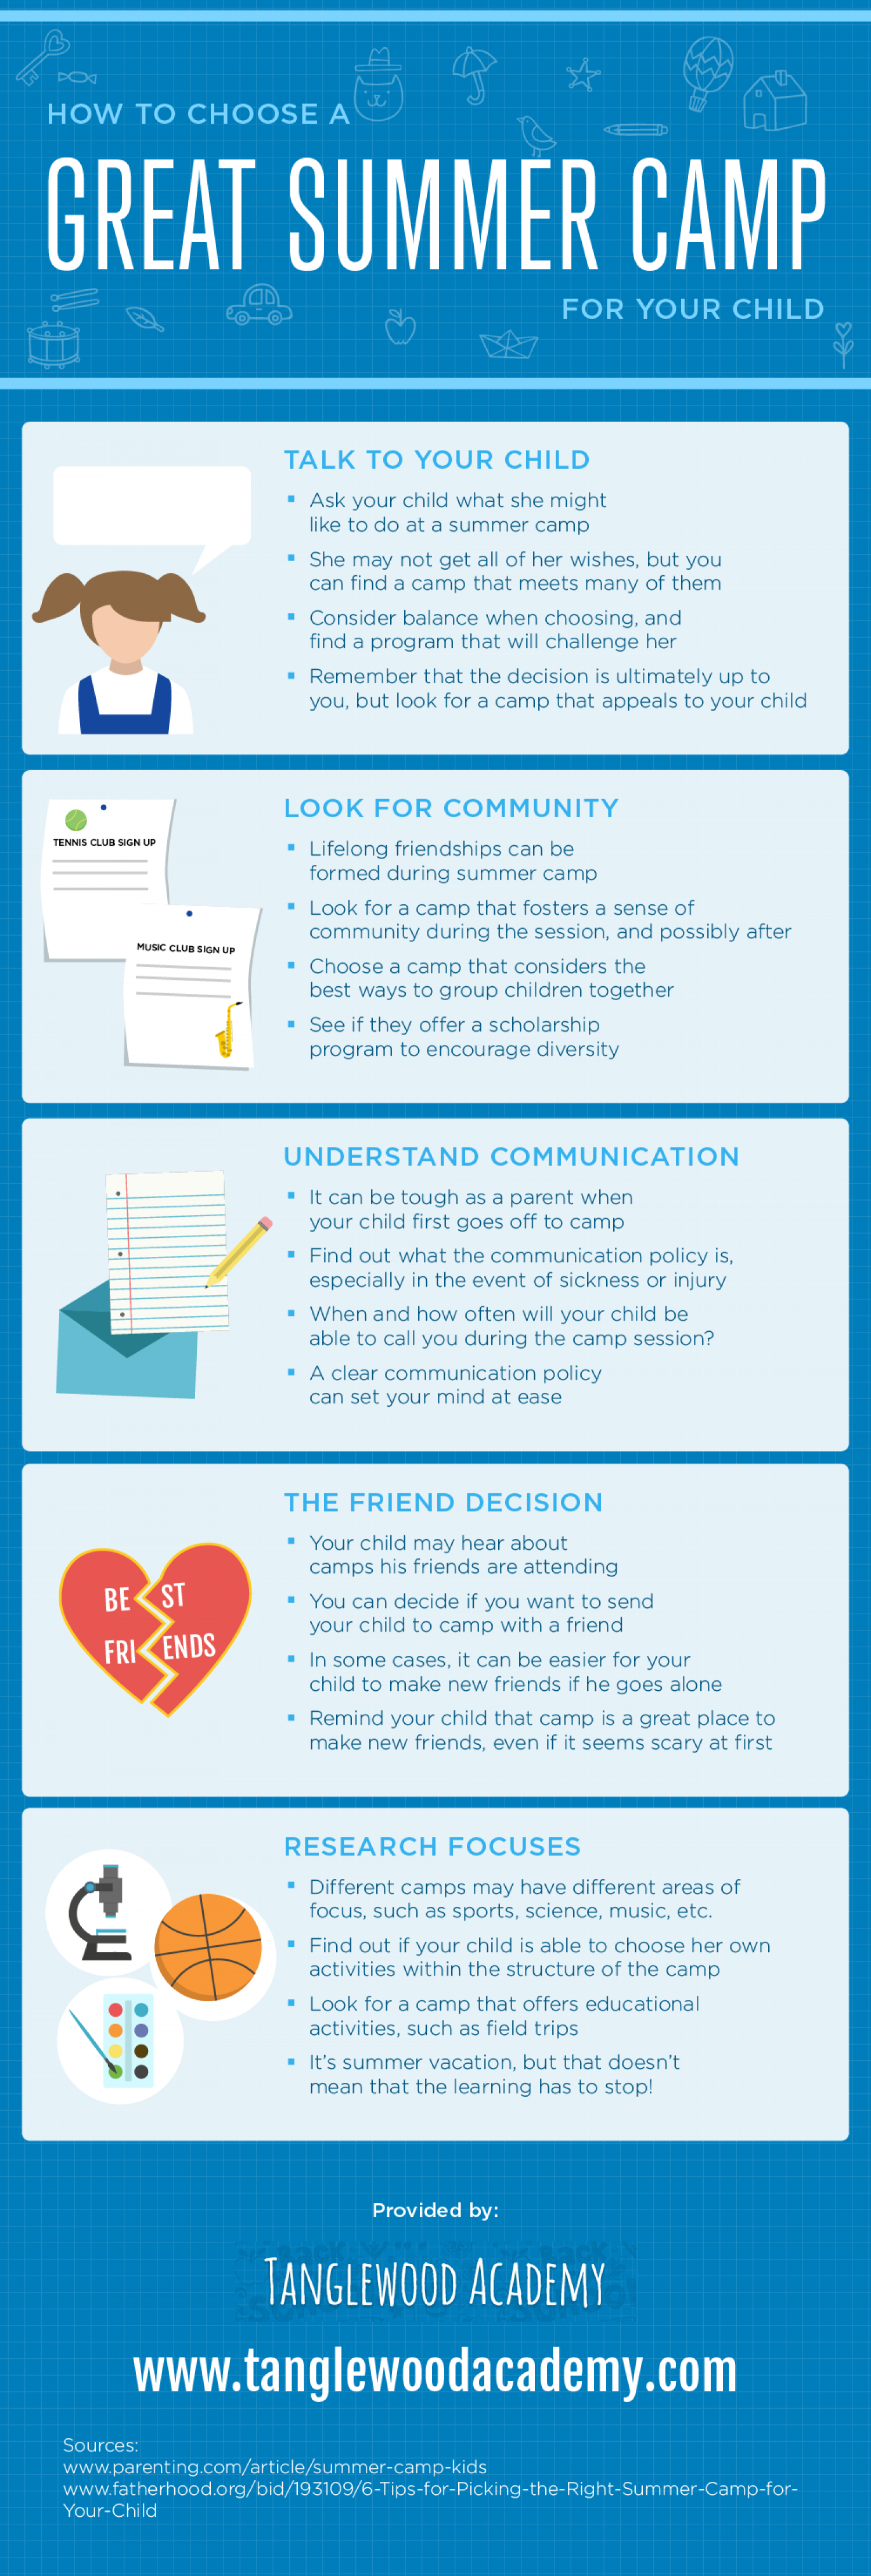 How to Choose a Great Summer Camp for Your Child Infographic